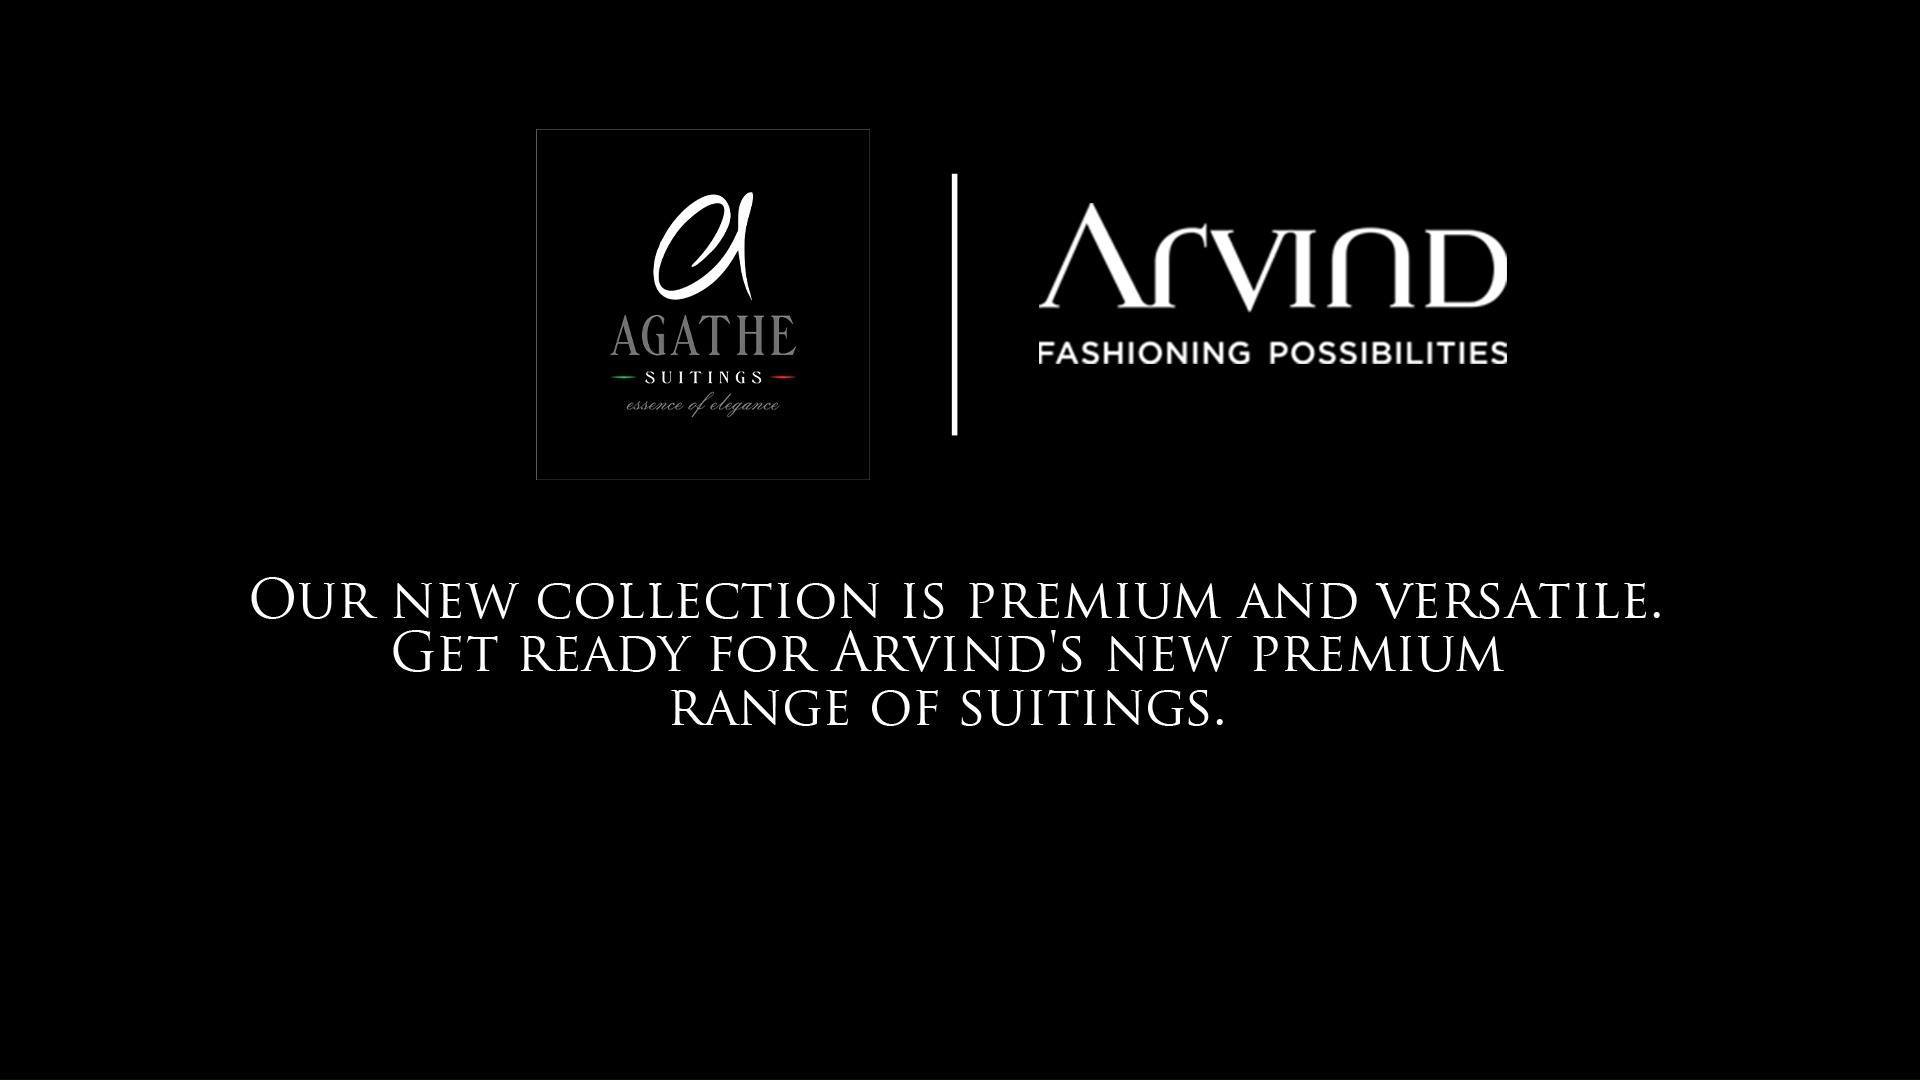 The new suiting language of Arvind. A collection of subtle and elegant designs, custom-made to suit fast-fashion, get ready for Agathe. . . . #ADfashion #ArvindFashion #TheArvindStore #Agathe #suitingcollection #ArvindFashioningPossibilities #formals #Menswear #MensFashion #Fashion #style #comfortable #classicmenswear #texturedfabrics #firstimpressions #StayStylish